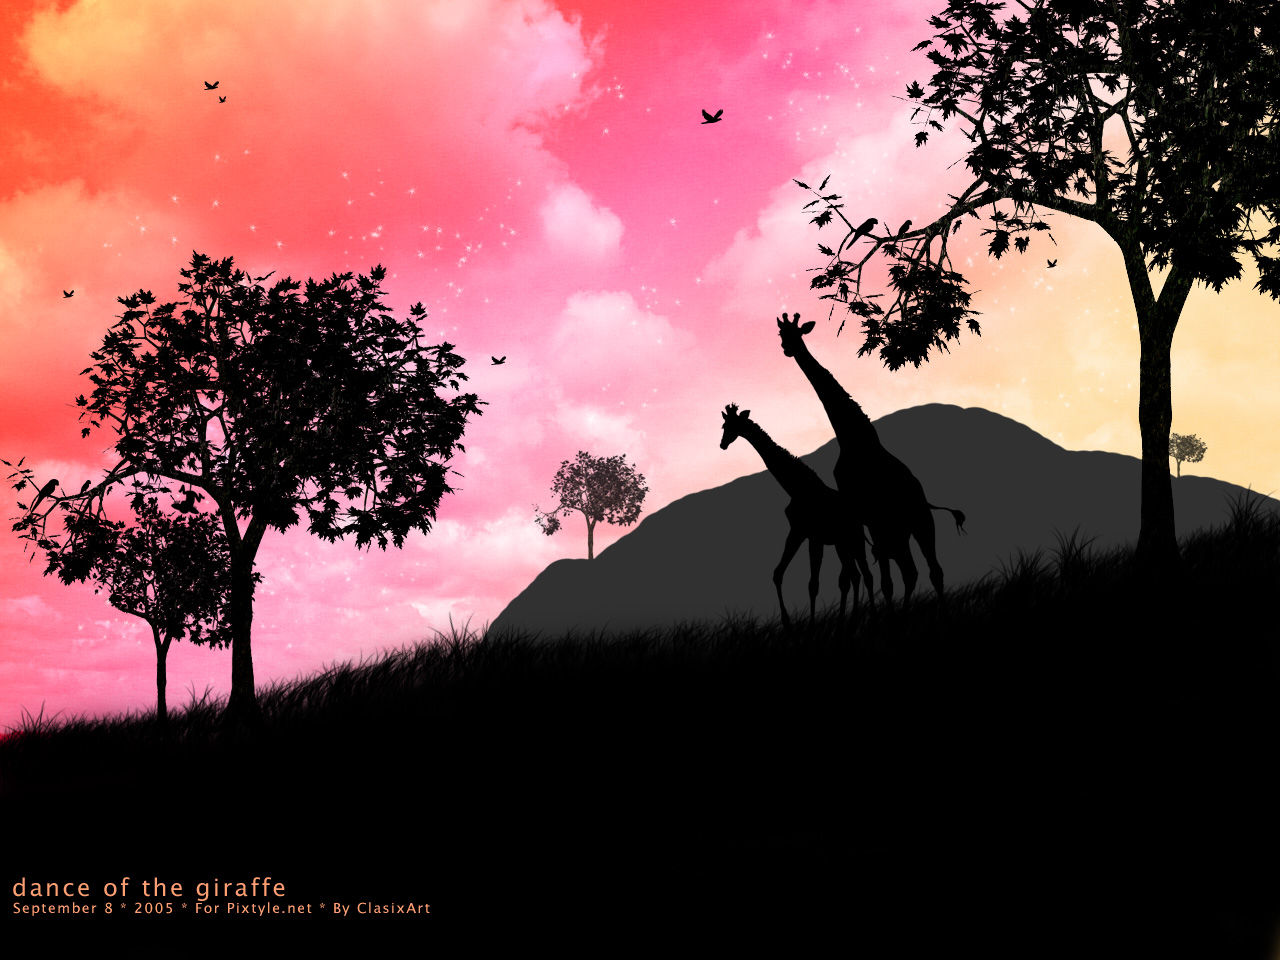 Guillaume Belche Wallpaper dance of the giraffe